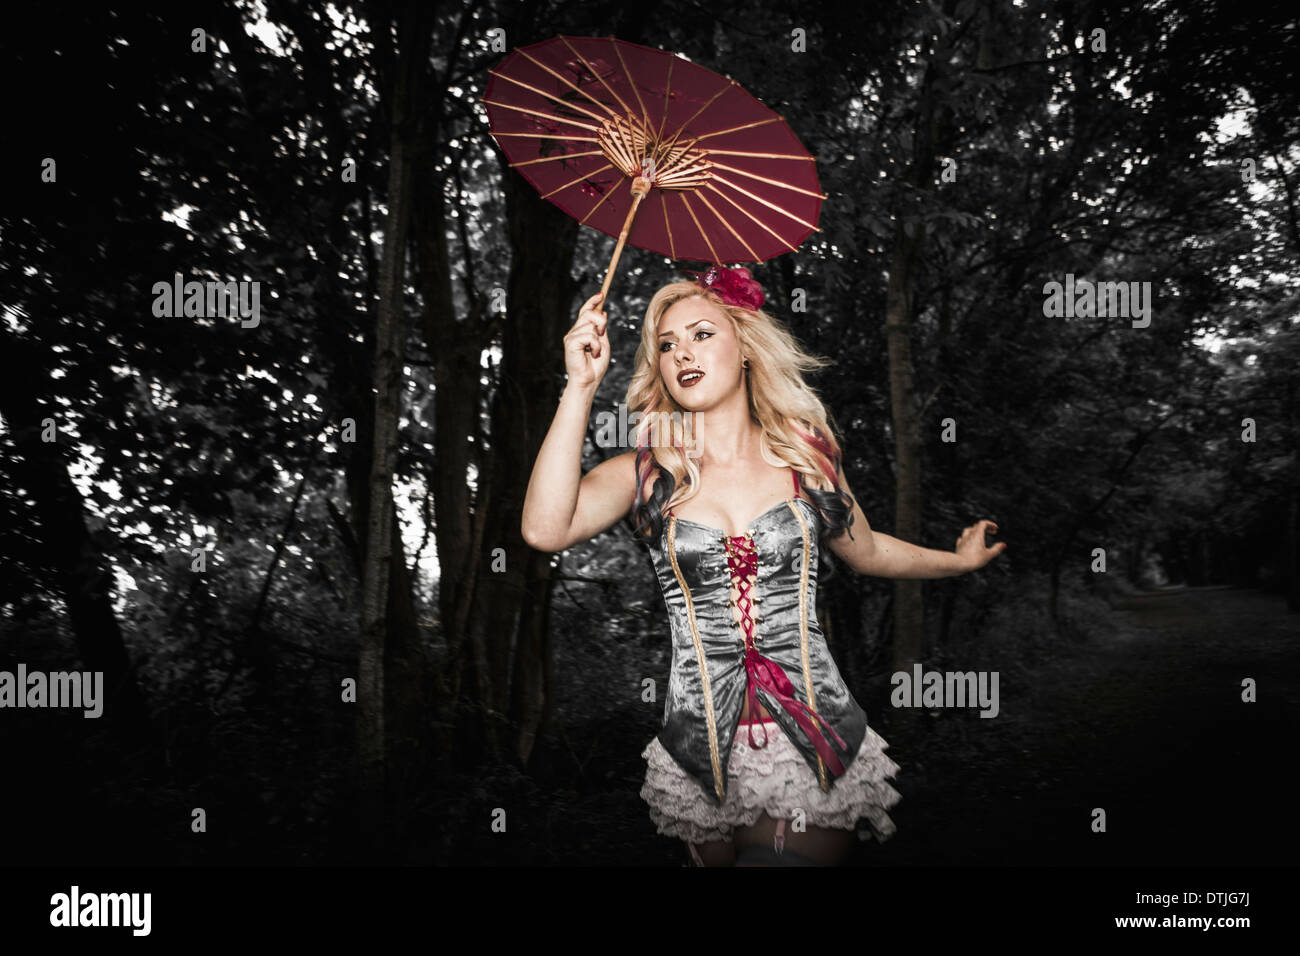 A woman wearing a laced basque, striped stockings and suspenders Holding a paper sunshade umbrella A carnival circus outfit - Stock Image